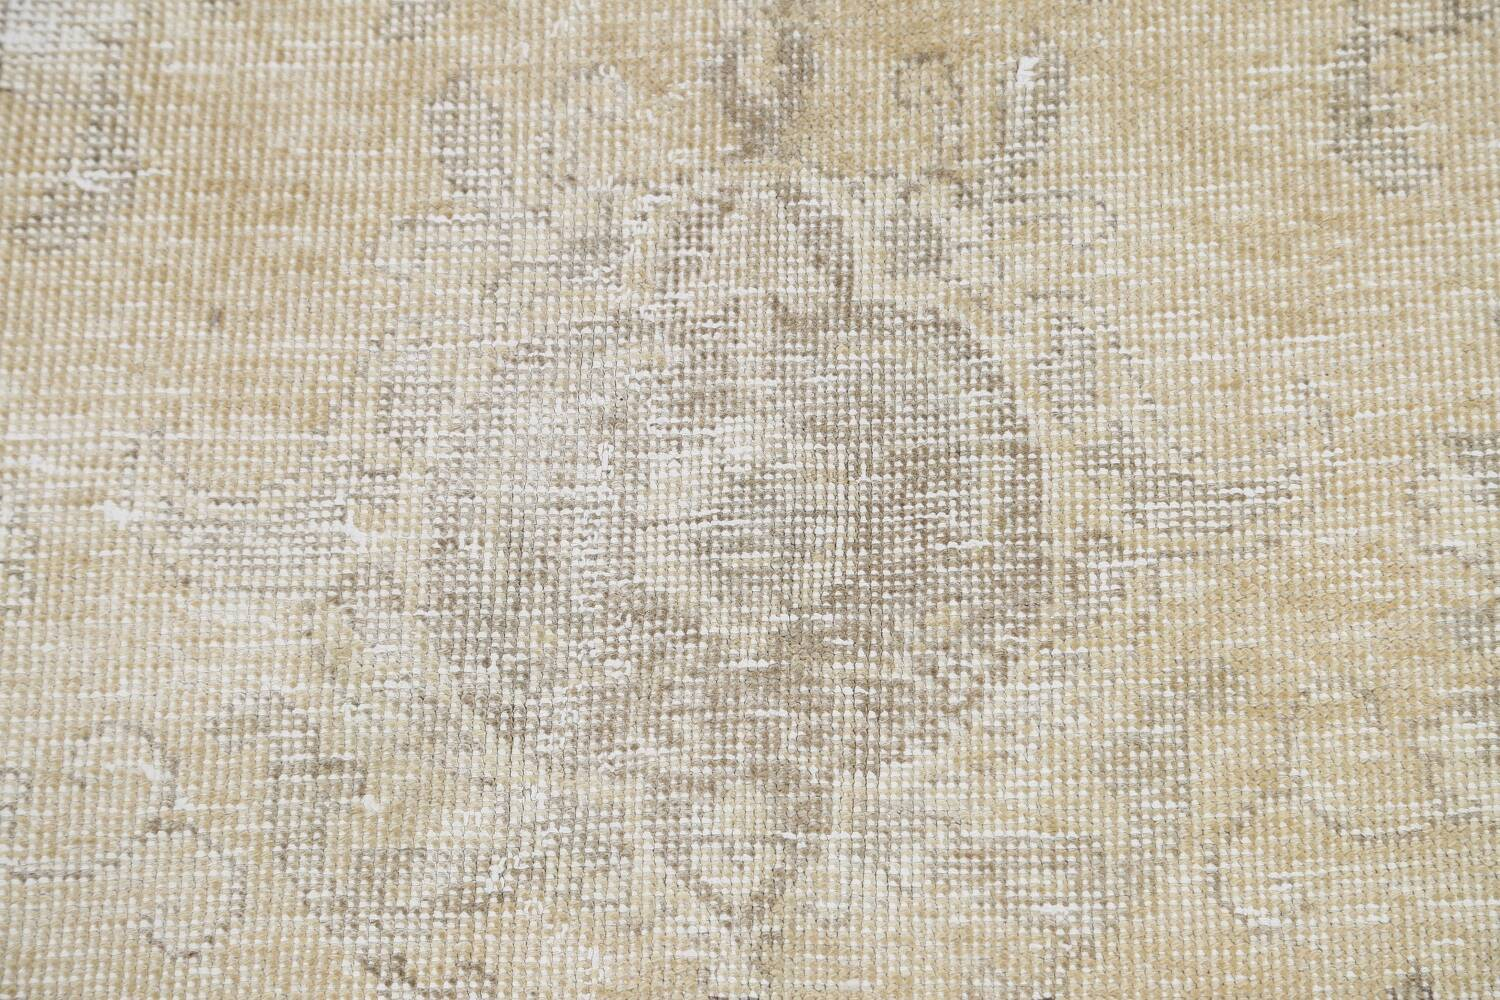 Muted Distressed Tabriz Persian Area Rug 8x12 image 11